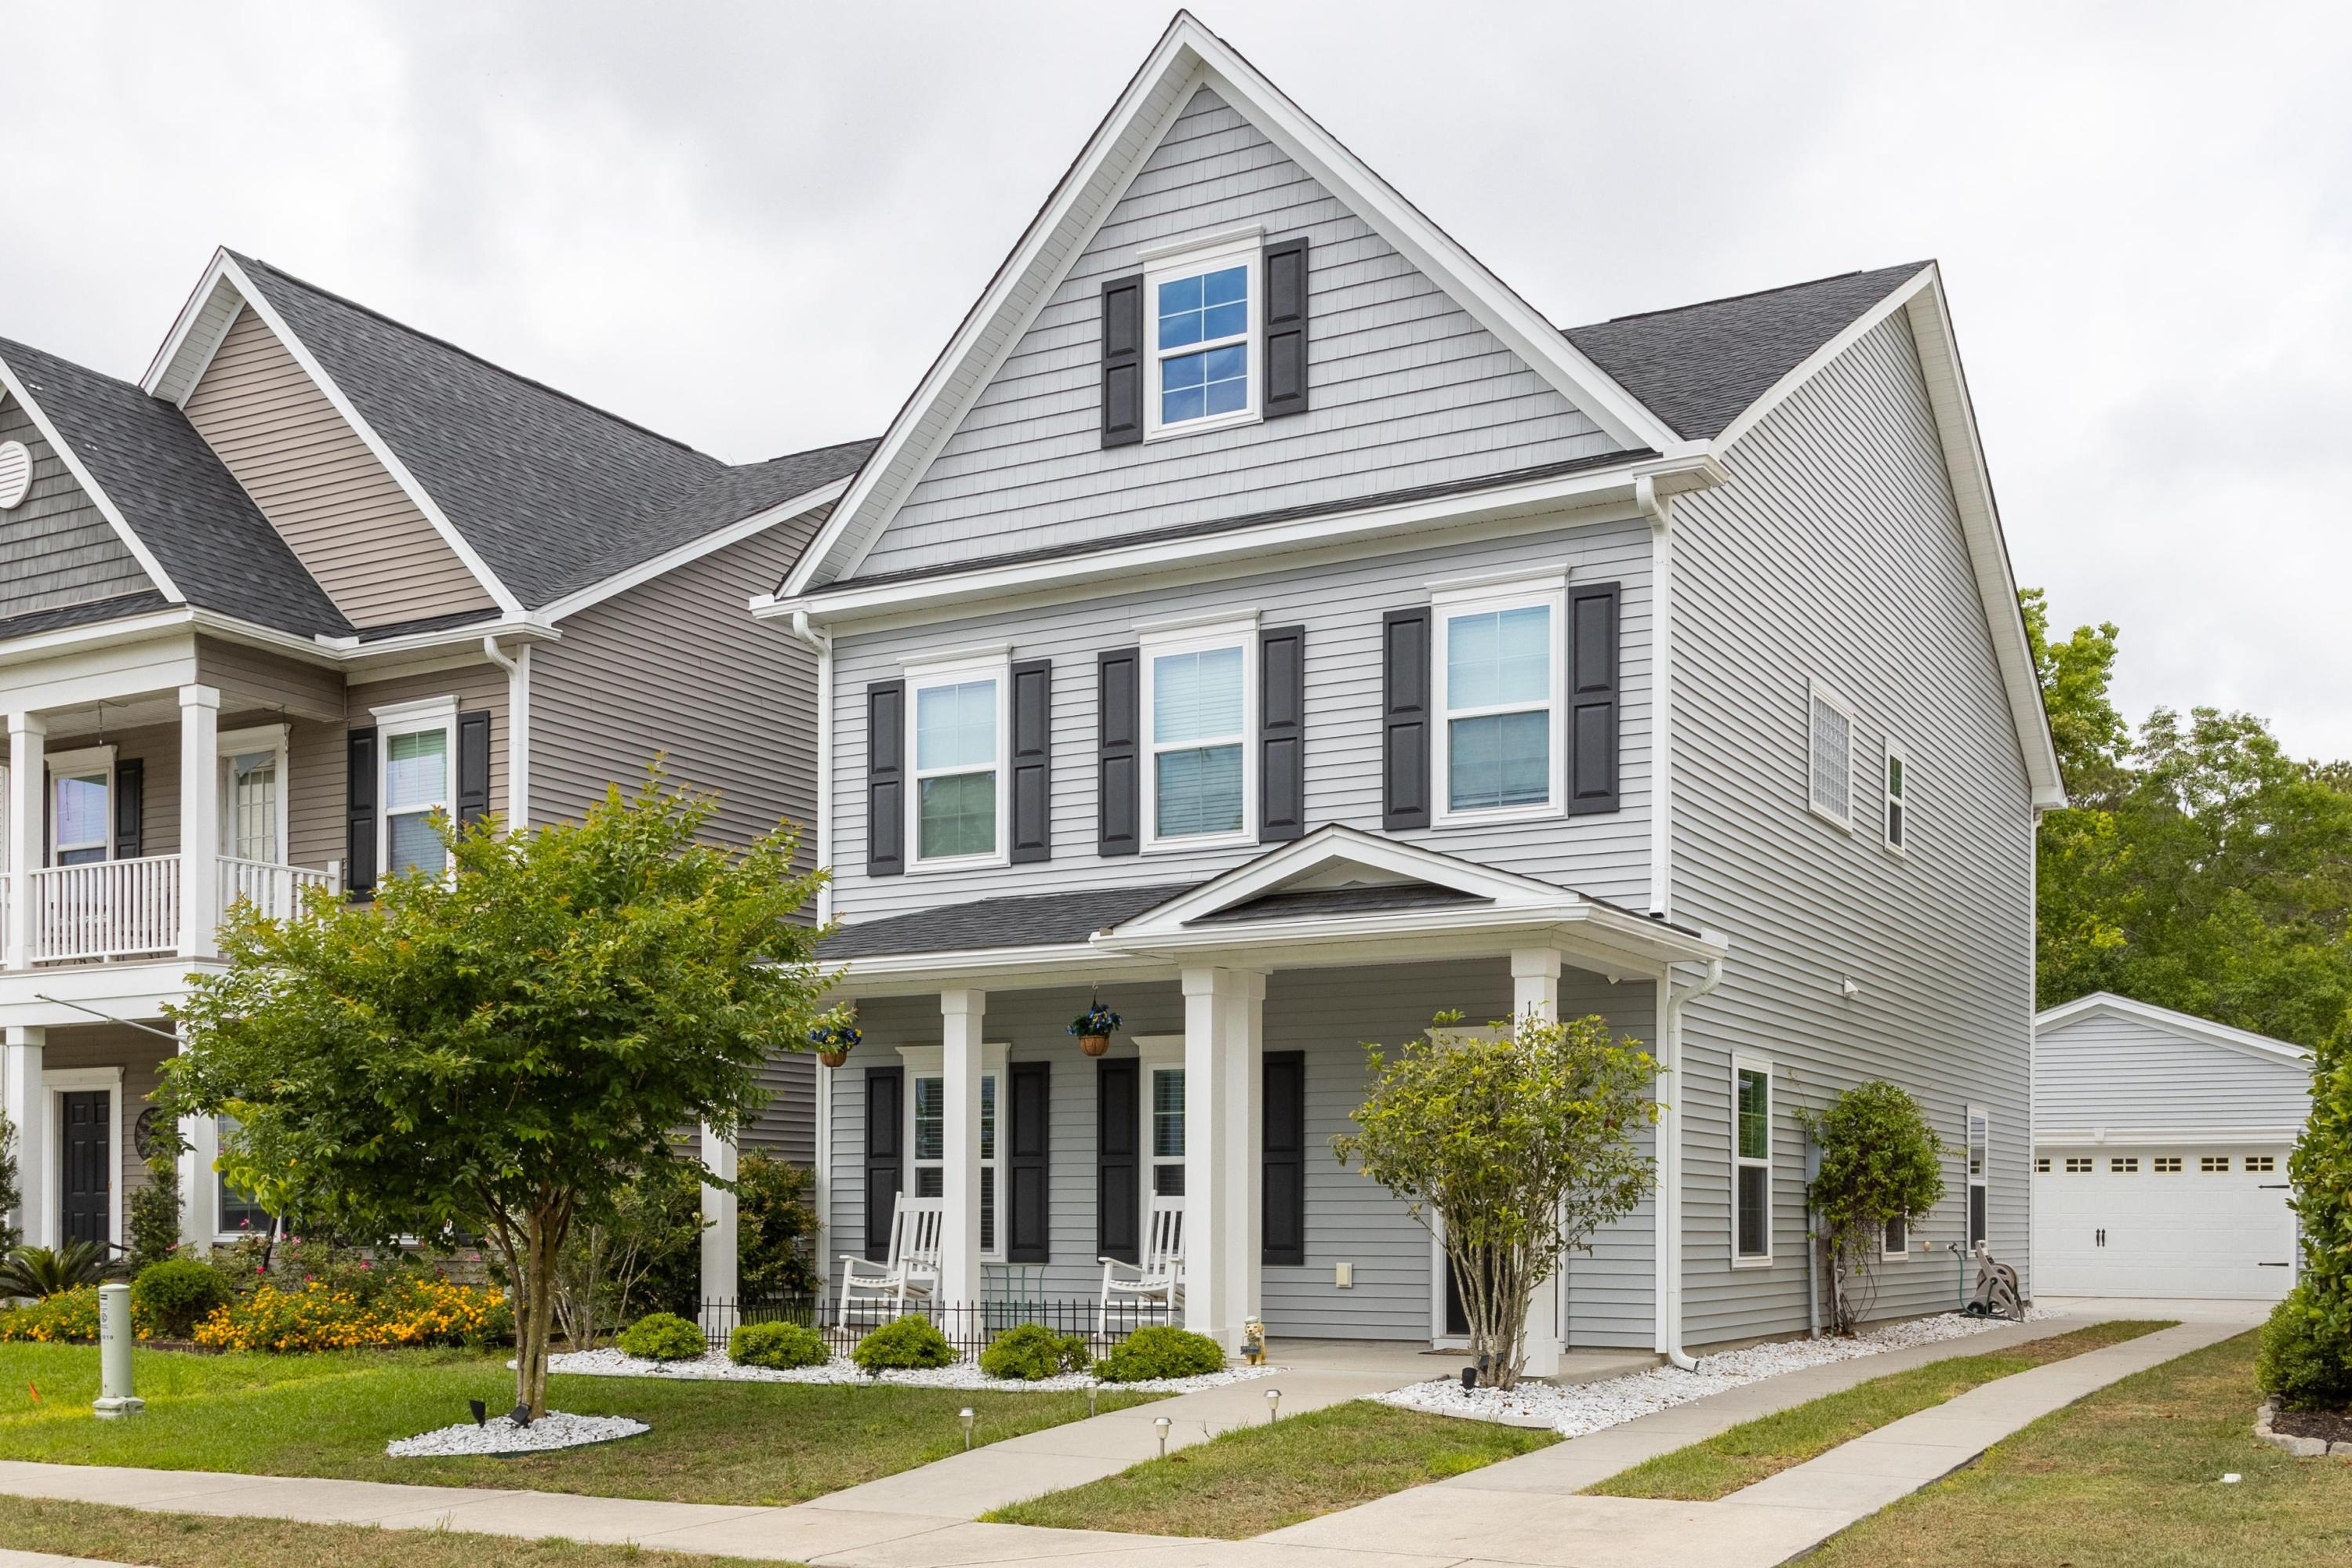 The Cottages at Johns Island Homes For Sale - 1821 Towne, Johns Island, SC - 0